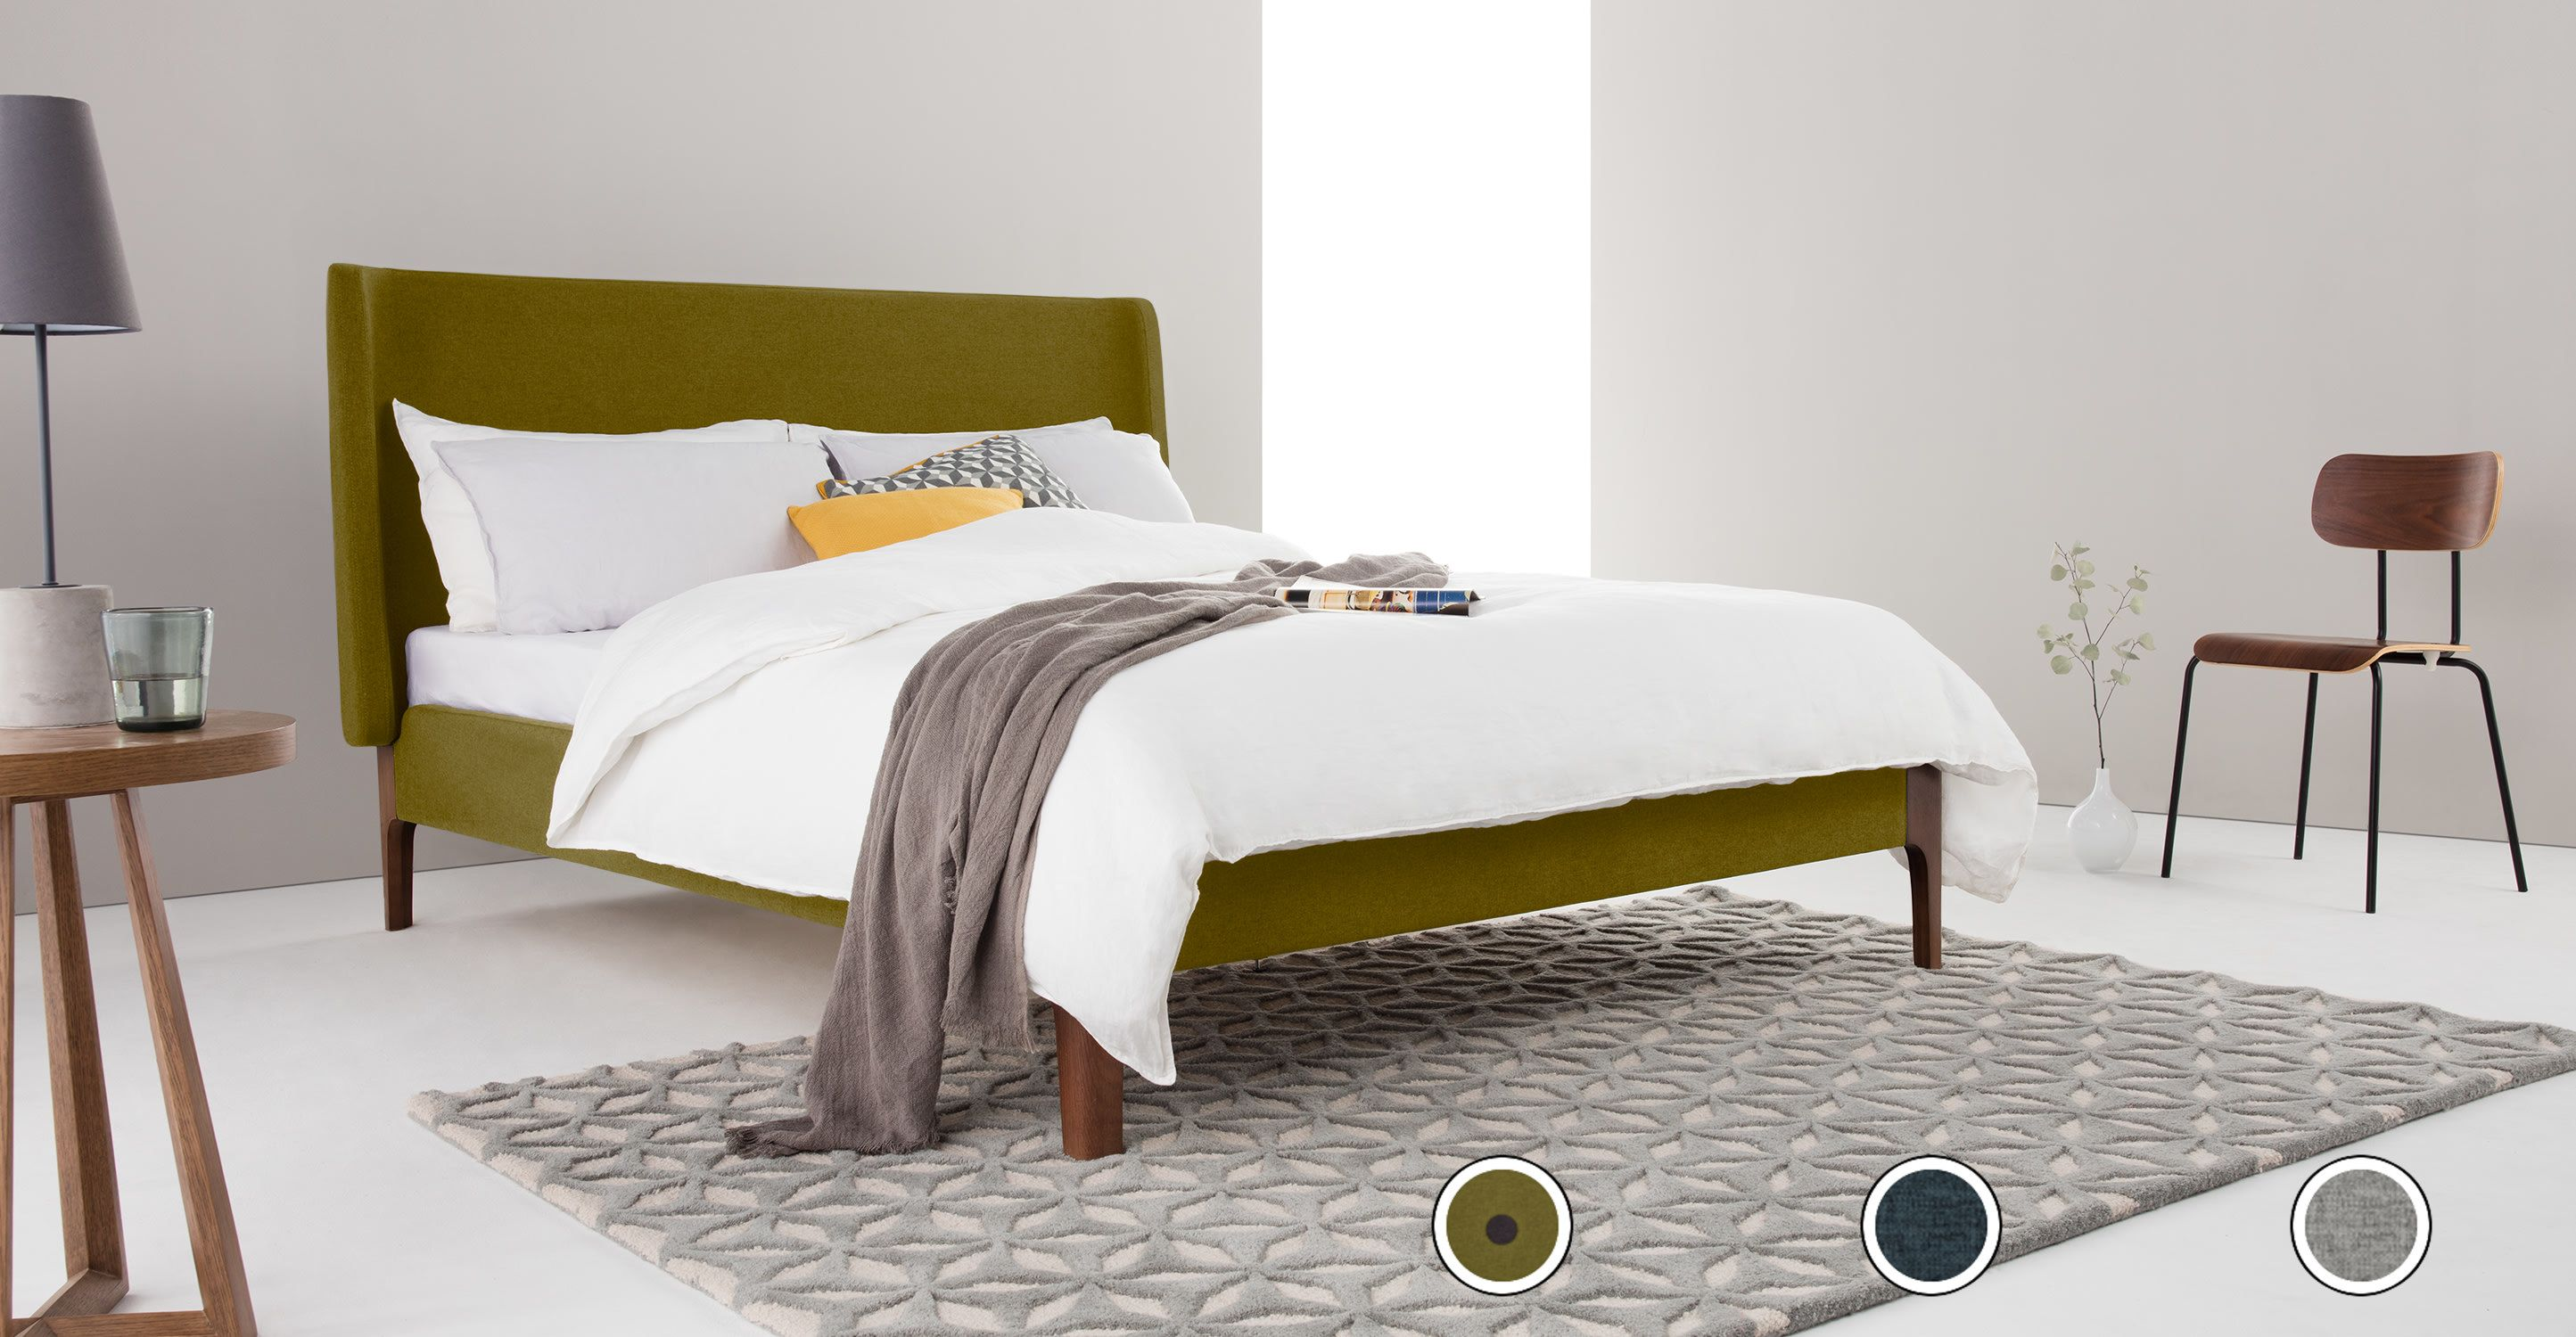 Roscoe Super King Size Bed Olive Green Super King Size Bed King Size Bed Superking Bed